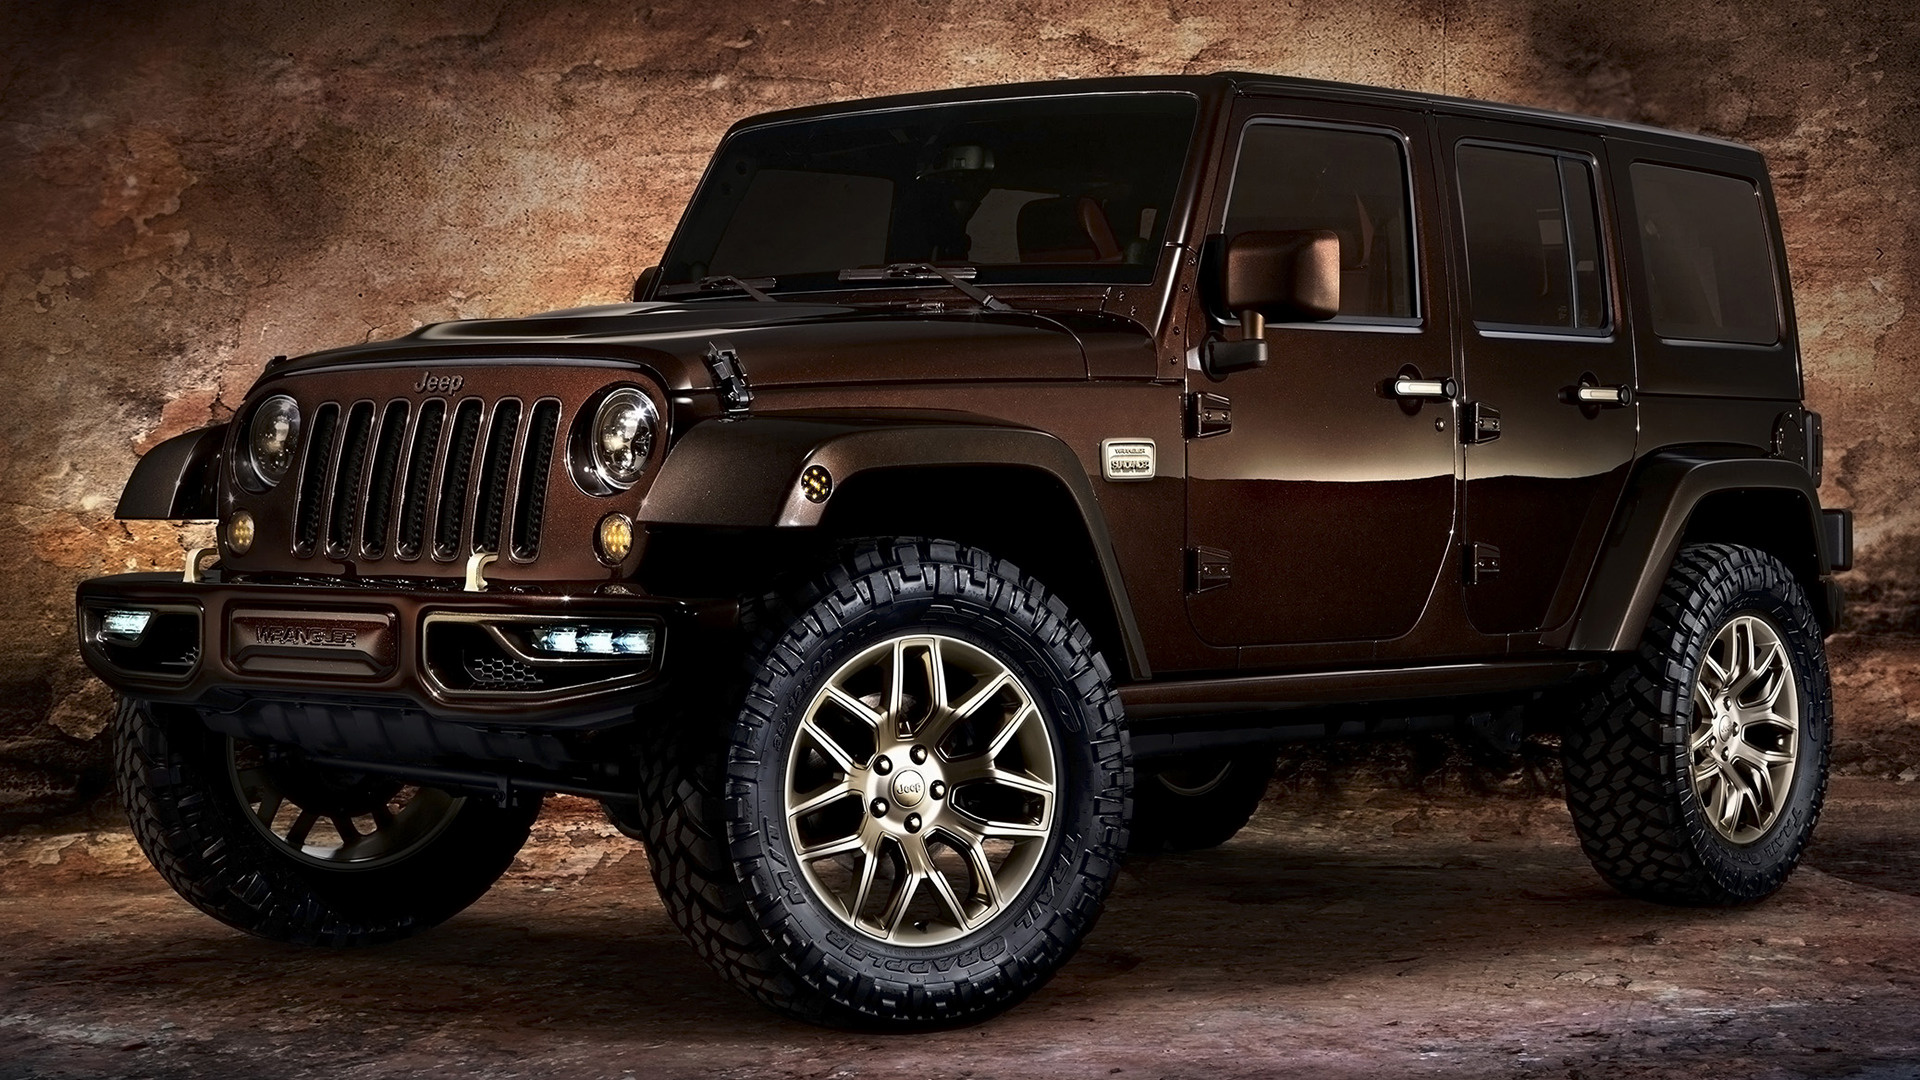 Jeep Car Images Hd: Jeep Wrangler Sundancer Concept (2014) Wallpapers And HD